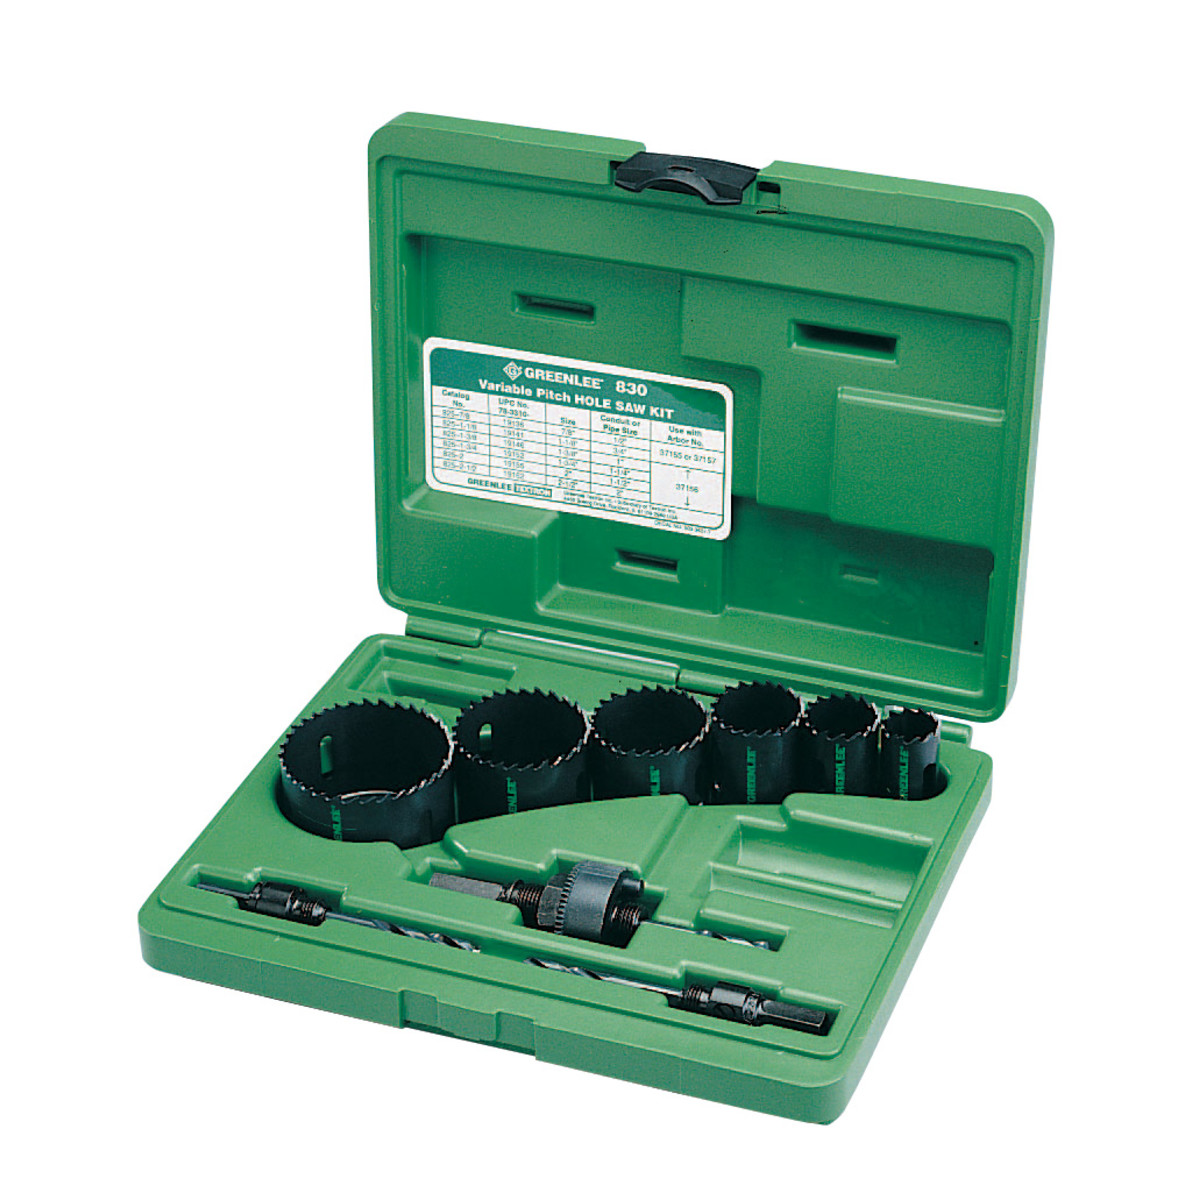 Greenlee 830 Quick Change Quick Change Hole Saw Kit, For Use With 1/2 to 2 in Conduit, Bi-Metal